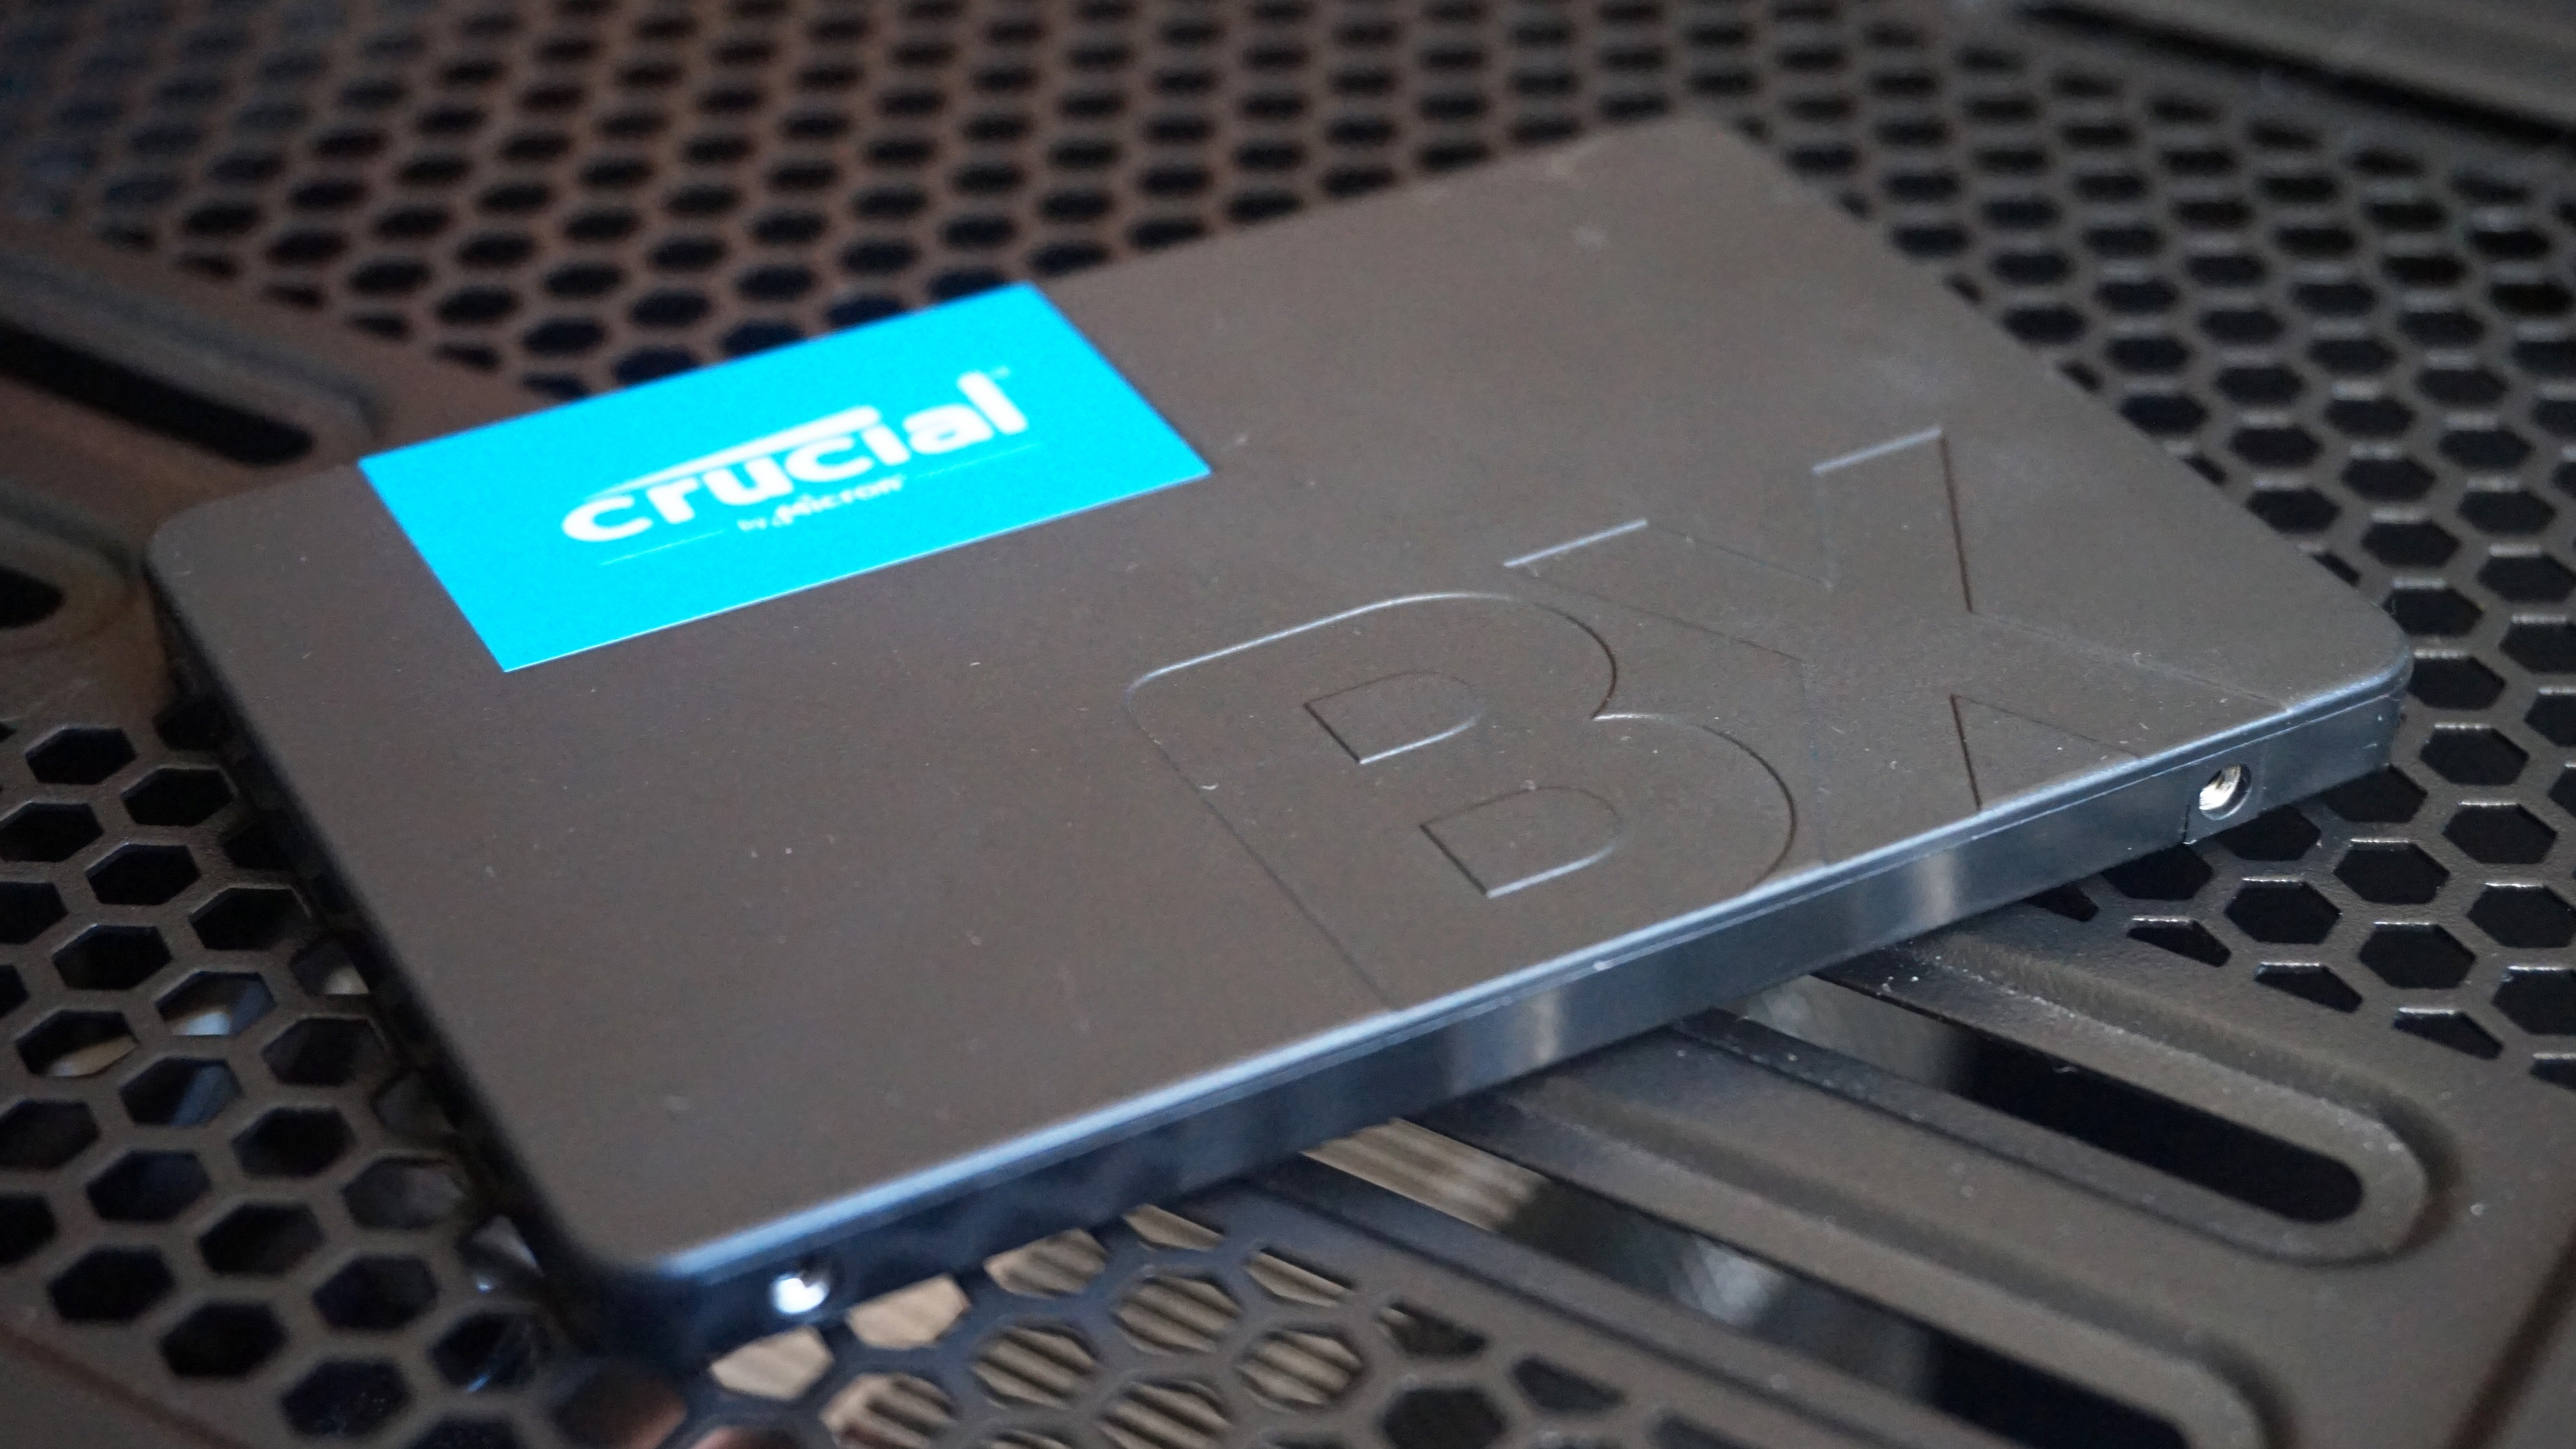 Crucial BX500 review: A great value gaming SSD | Rock Paper